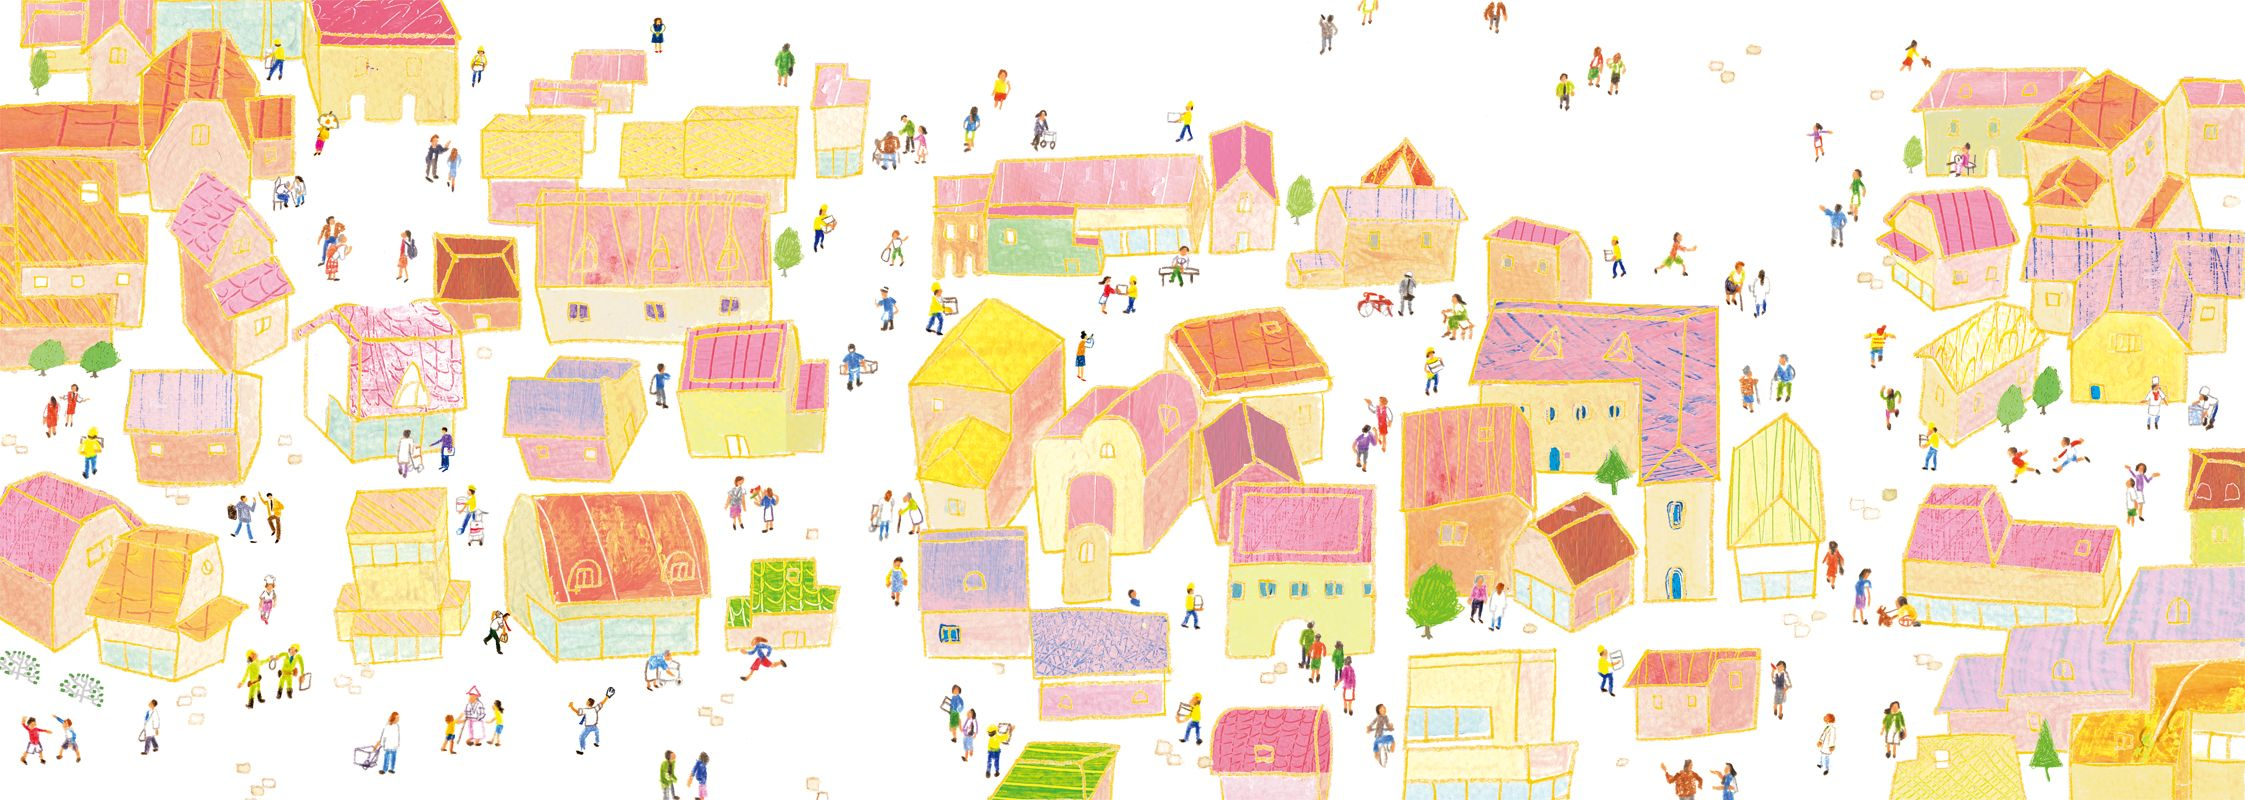 City Town Person Cute House Illustration街町人かわいい家